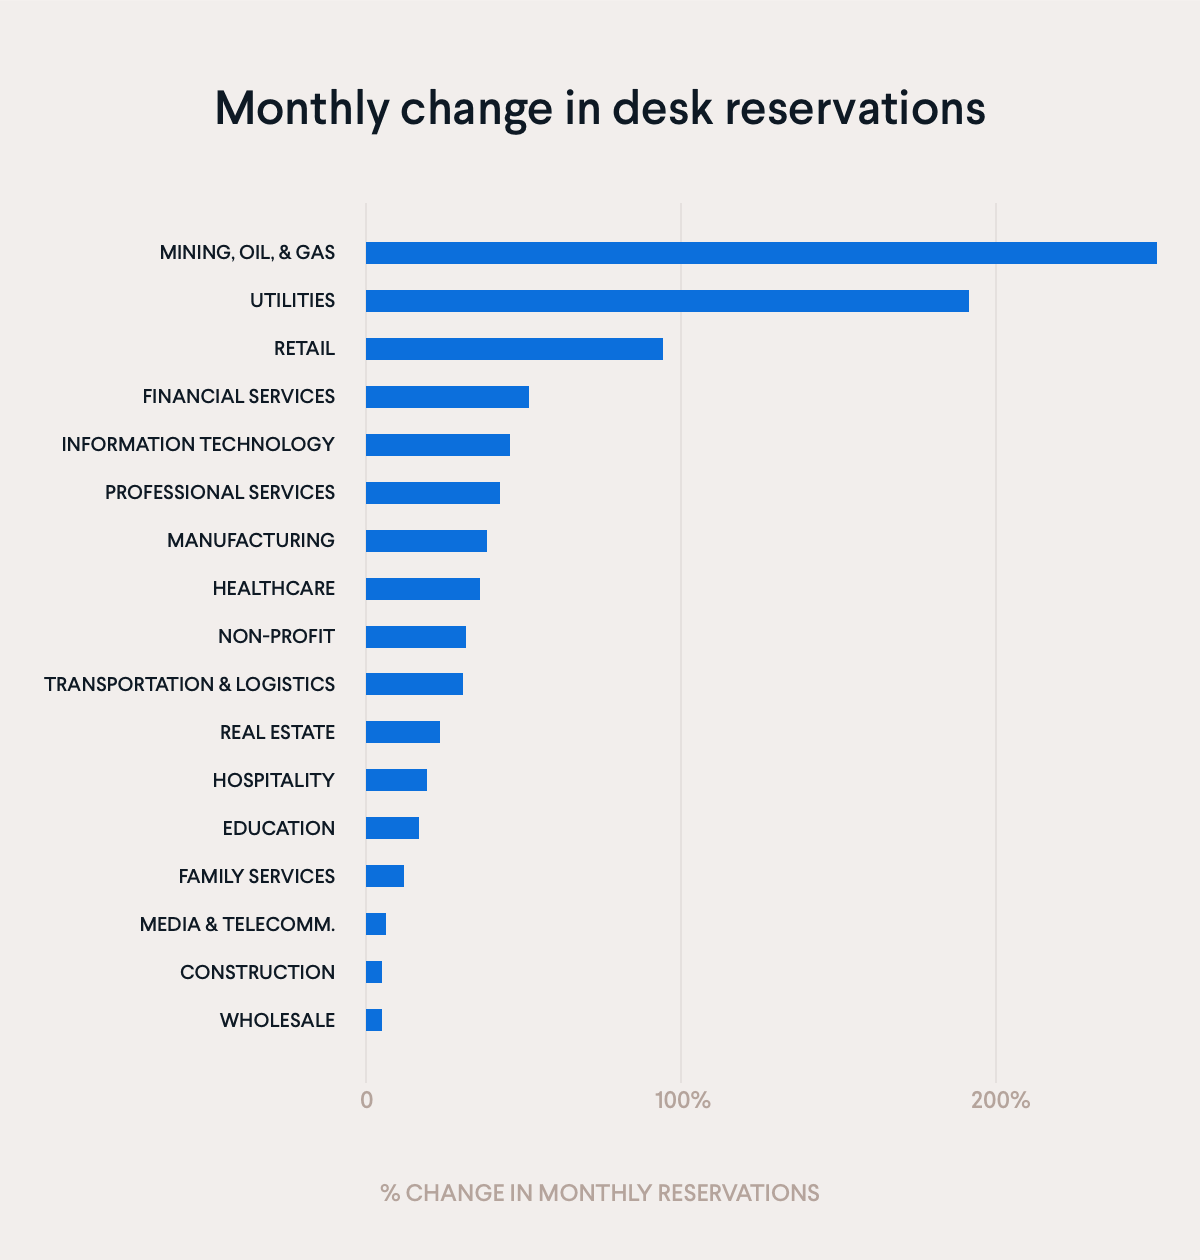 Monthly change in desk reservations